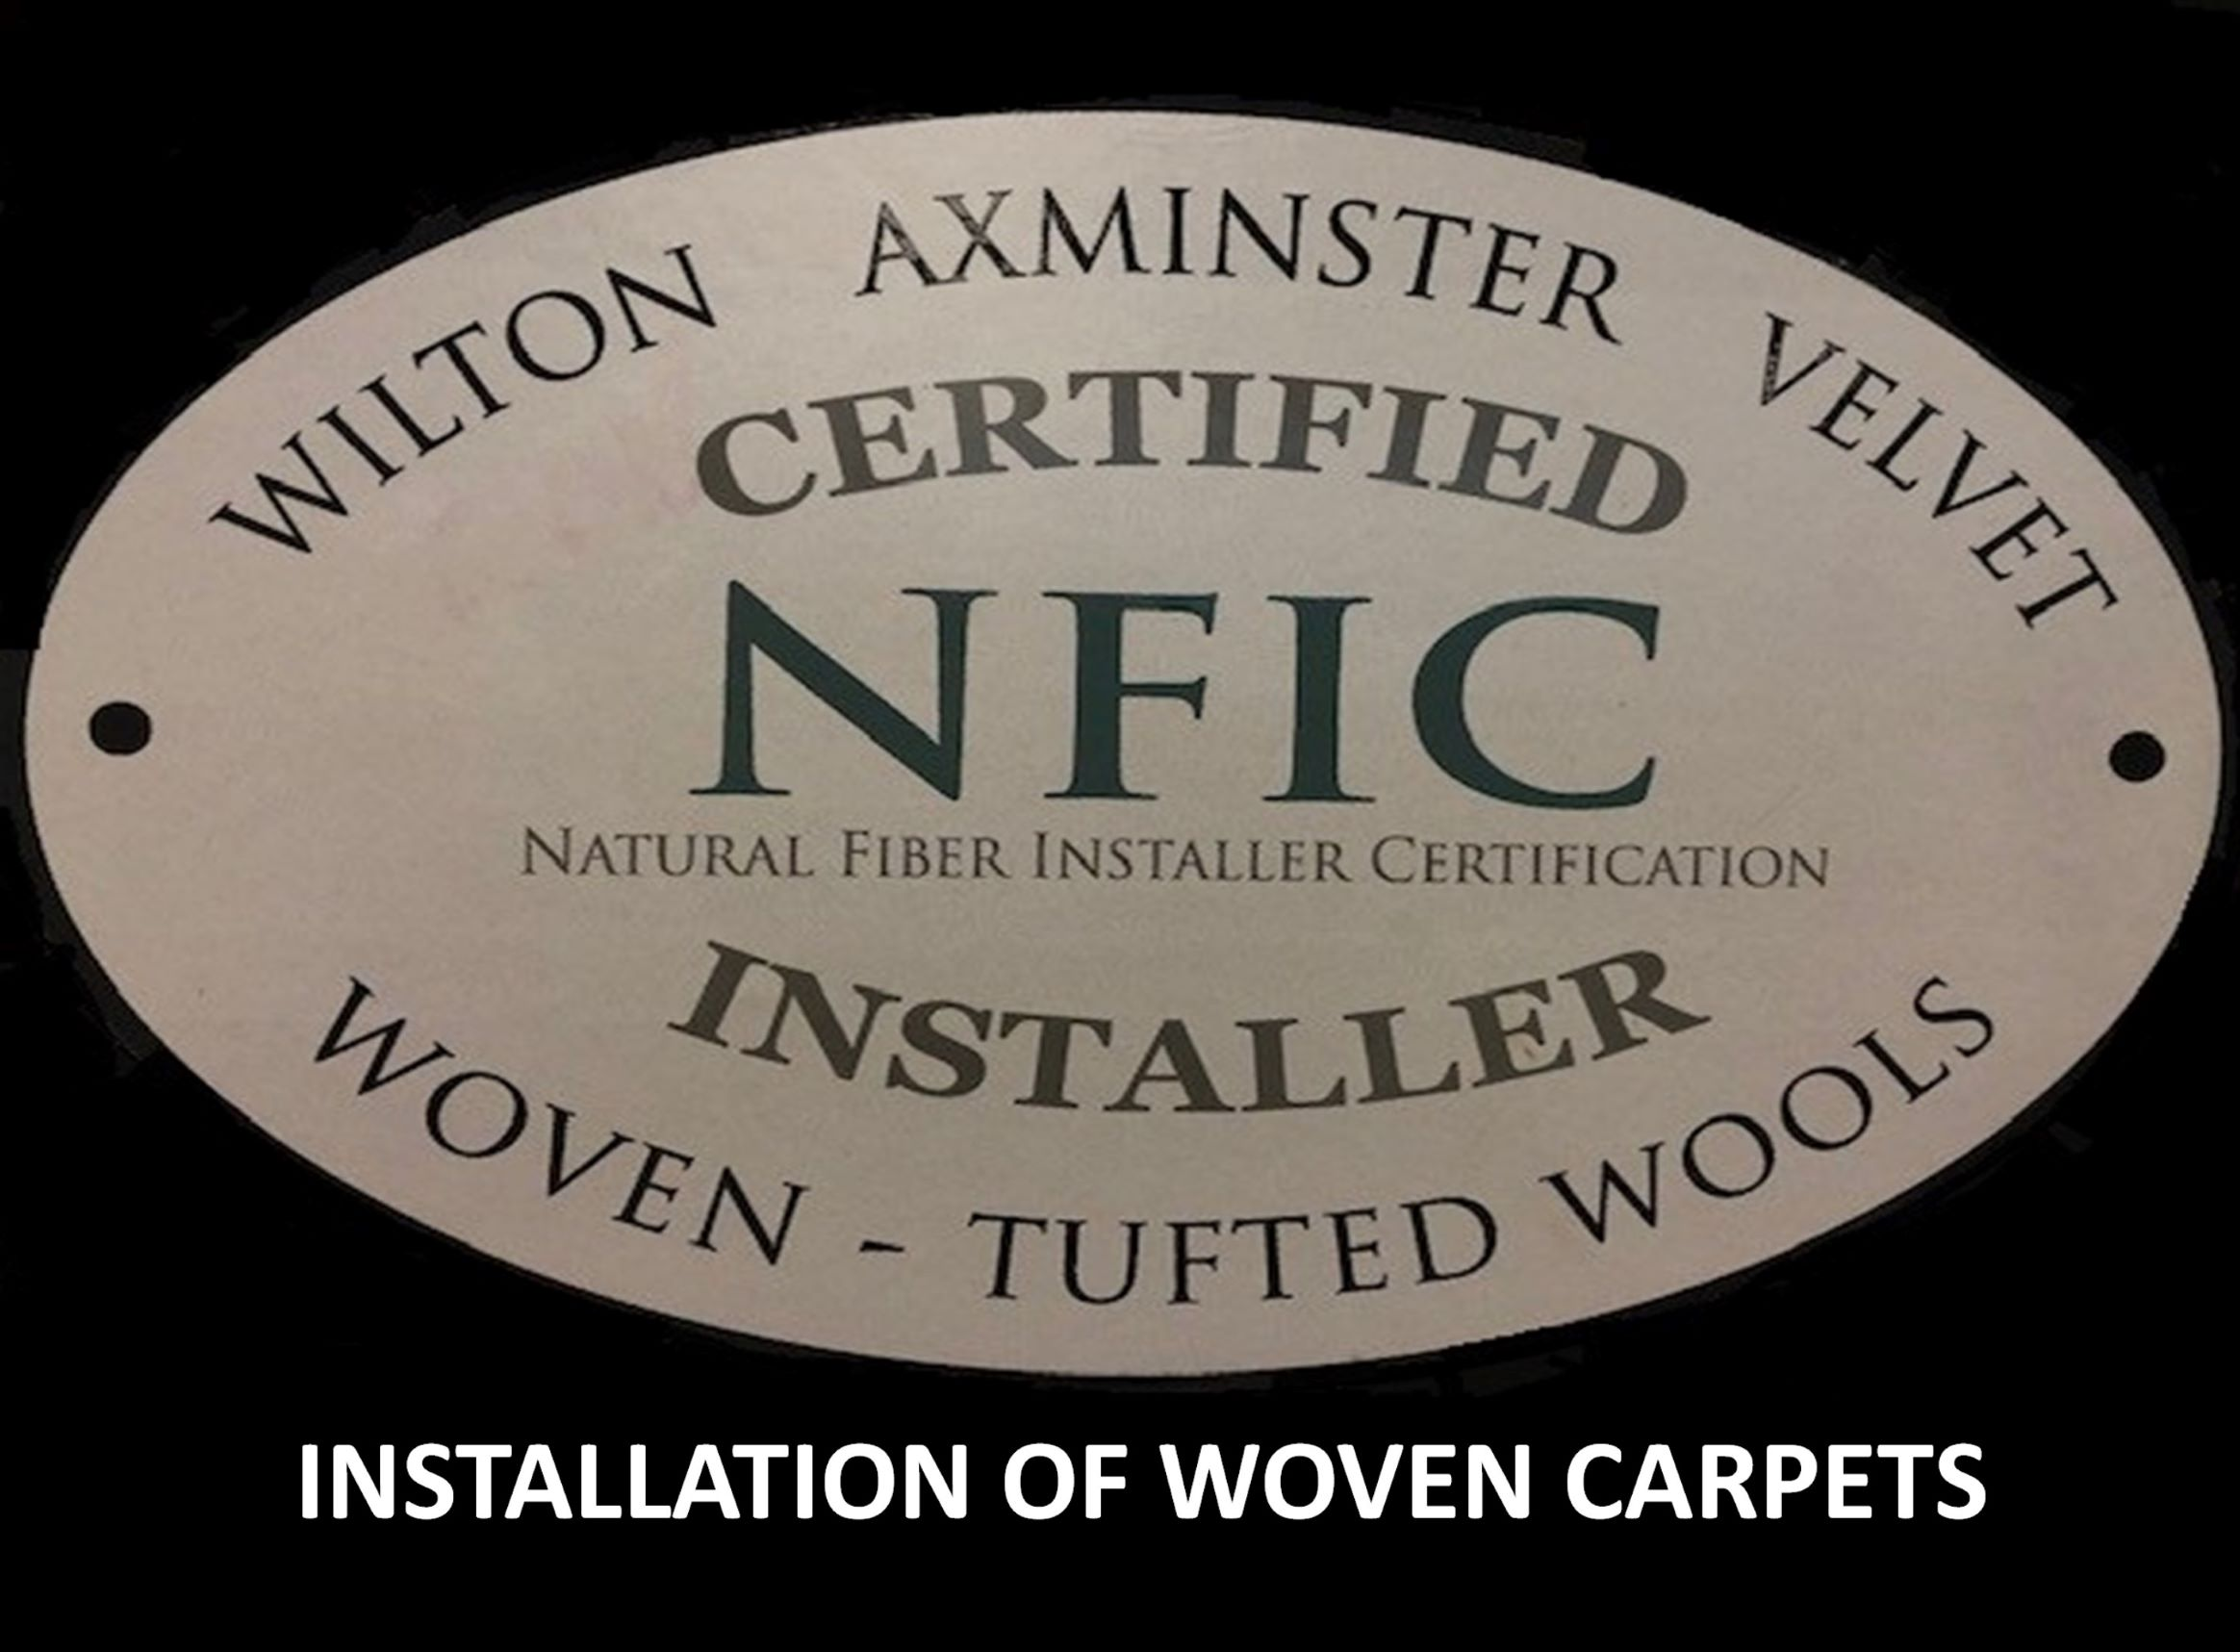 Installation of Woven Carpets NFIC